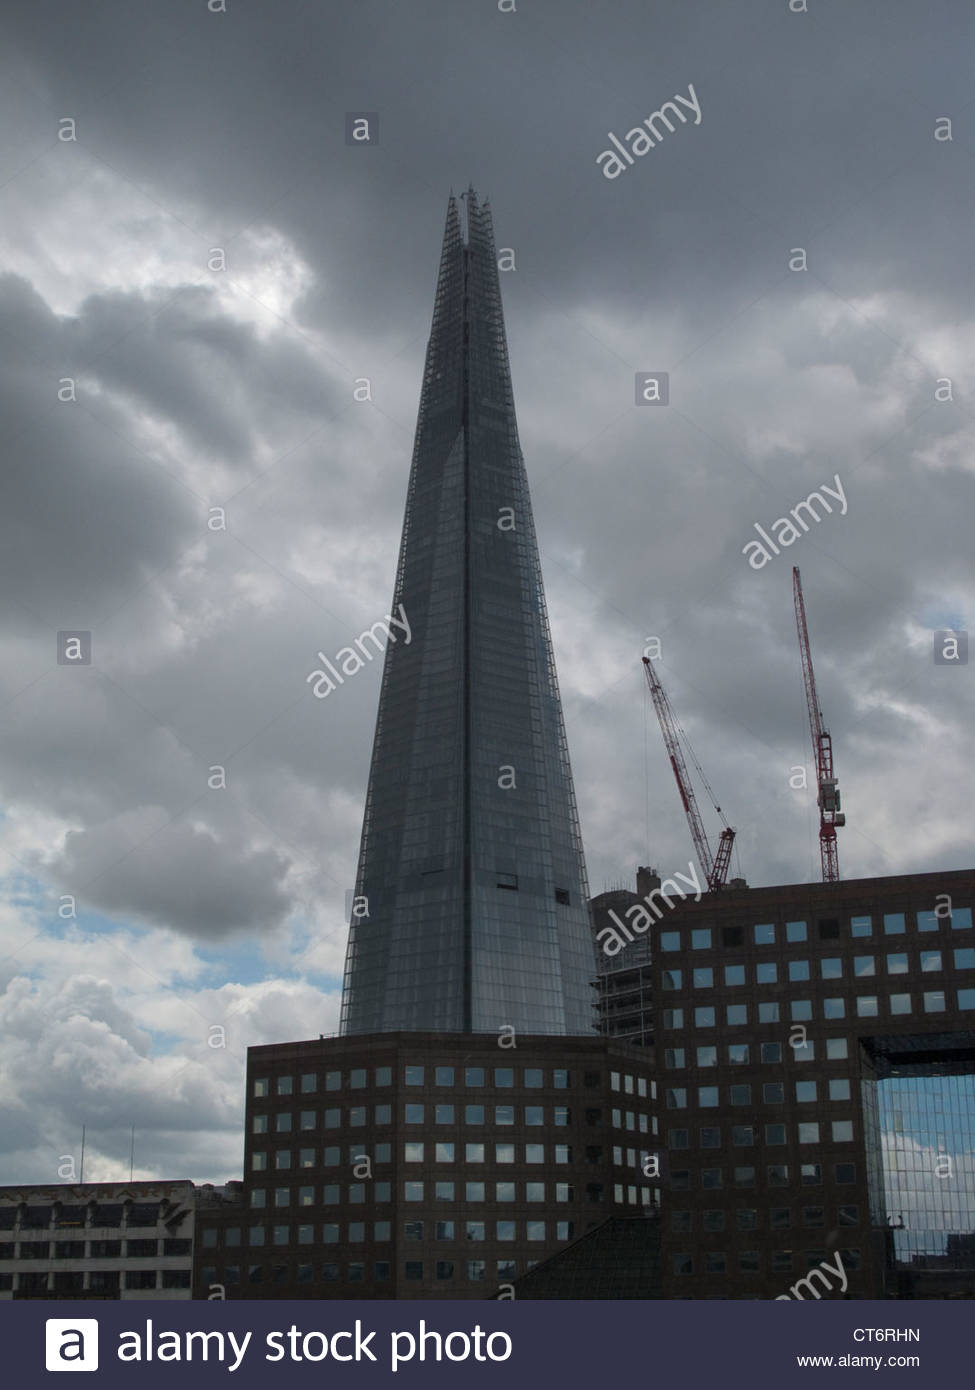 Silhouette of the holy cross on background of storm clouds stock - Storm Clouds Above The Shard London Bridge Tallest Building In Europe Stock Image